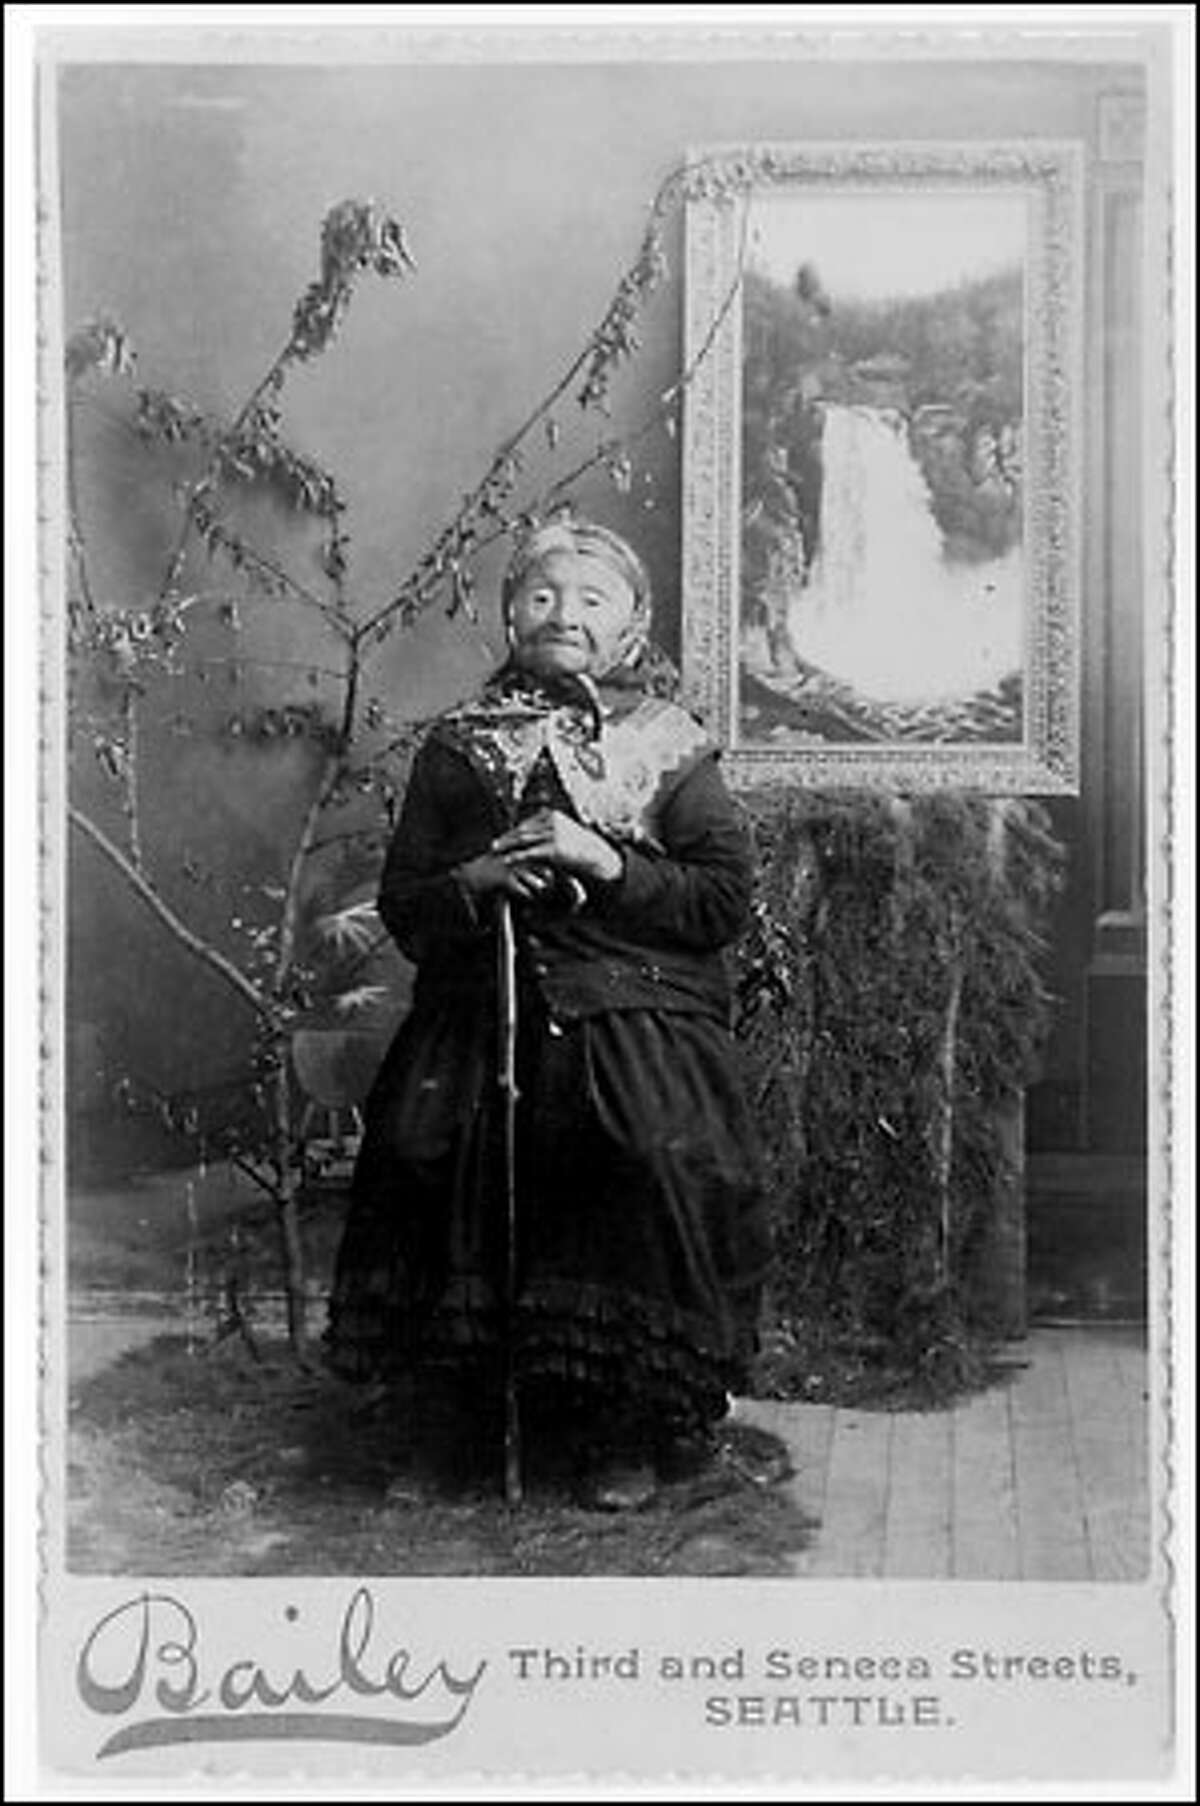 Princess Angeline, Chief Seattle's daughter, was a favorite subject of photographers. This image was made about 1890 when she was nearly 70.